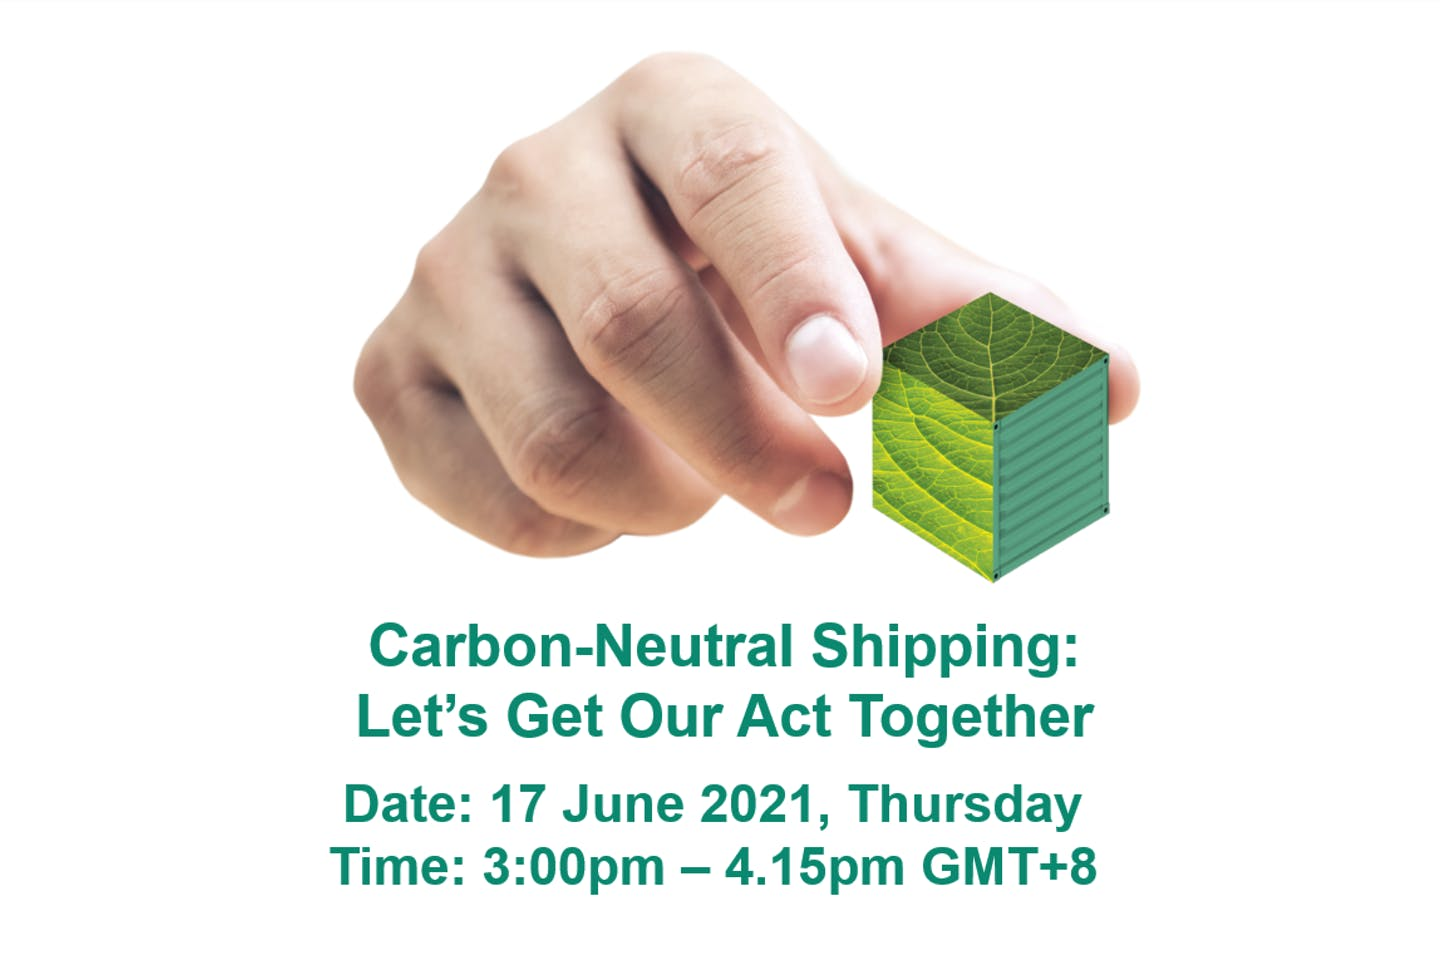 Carbon-neutral shipping: Let's get our act together